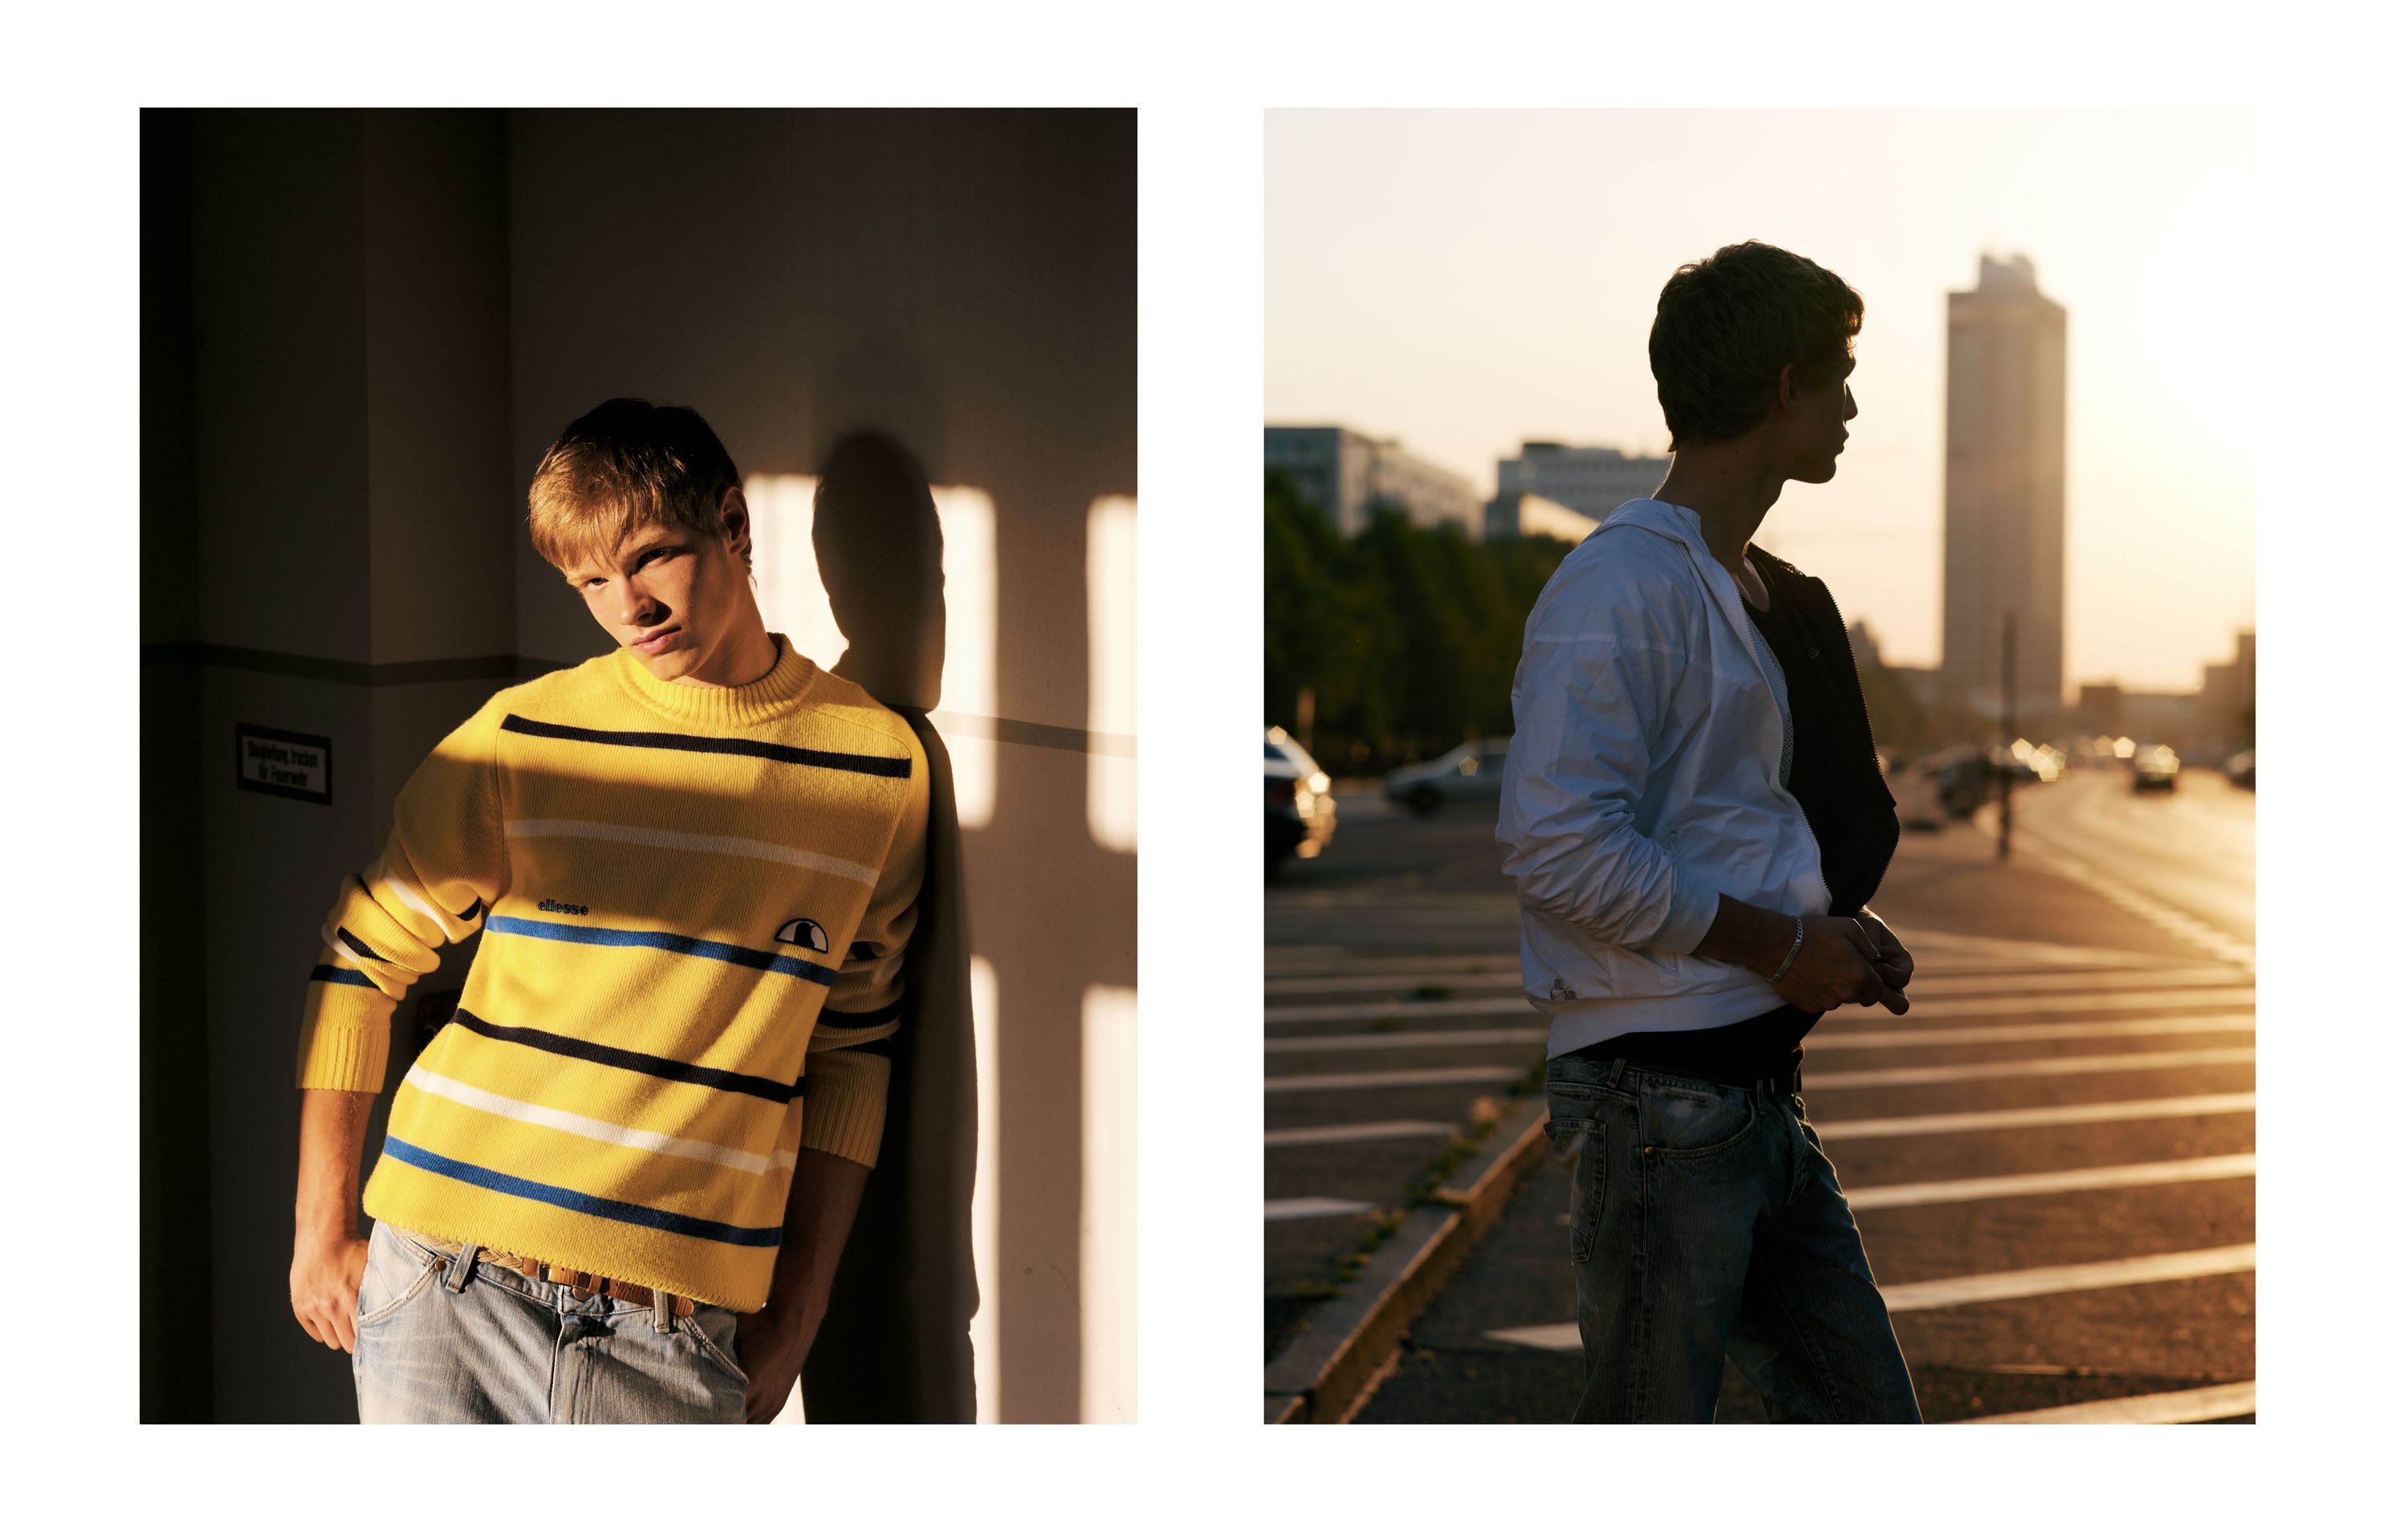 Sleek, Bread & Butter magazine, Fashion Editorial, Detlef Schneider Photography, male model, Fashion, Streetstyle